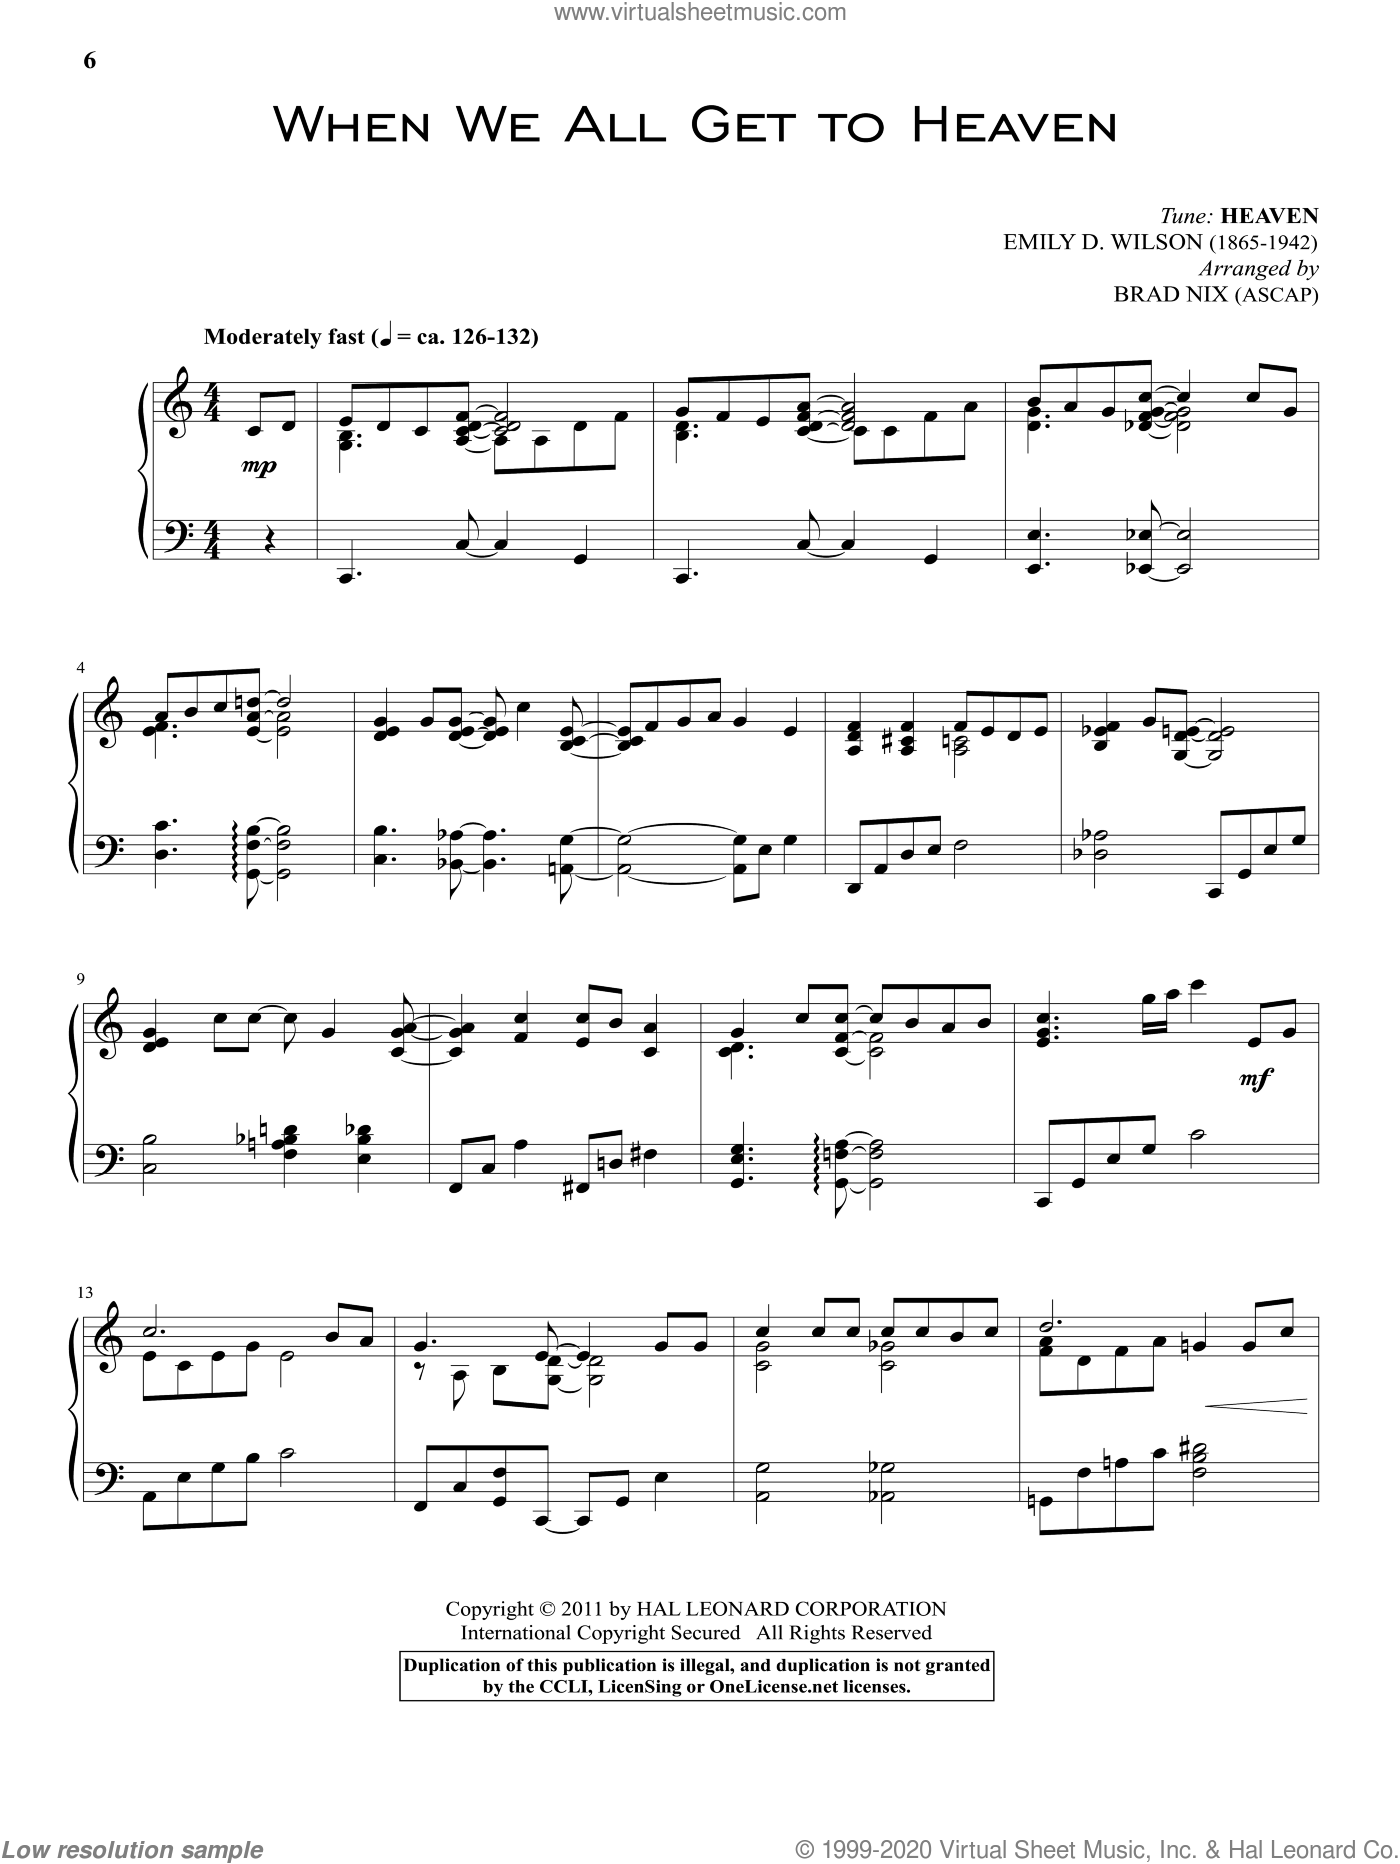 When We All Get To Heaven sheet music for piano solo by Emily D. Wilson